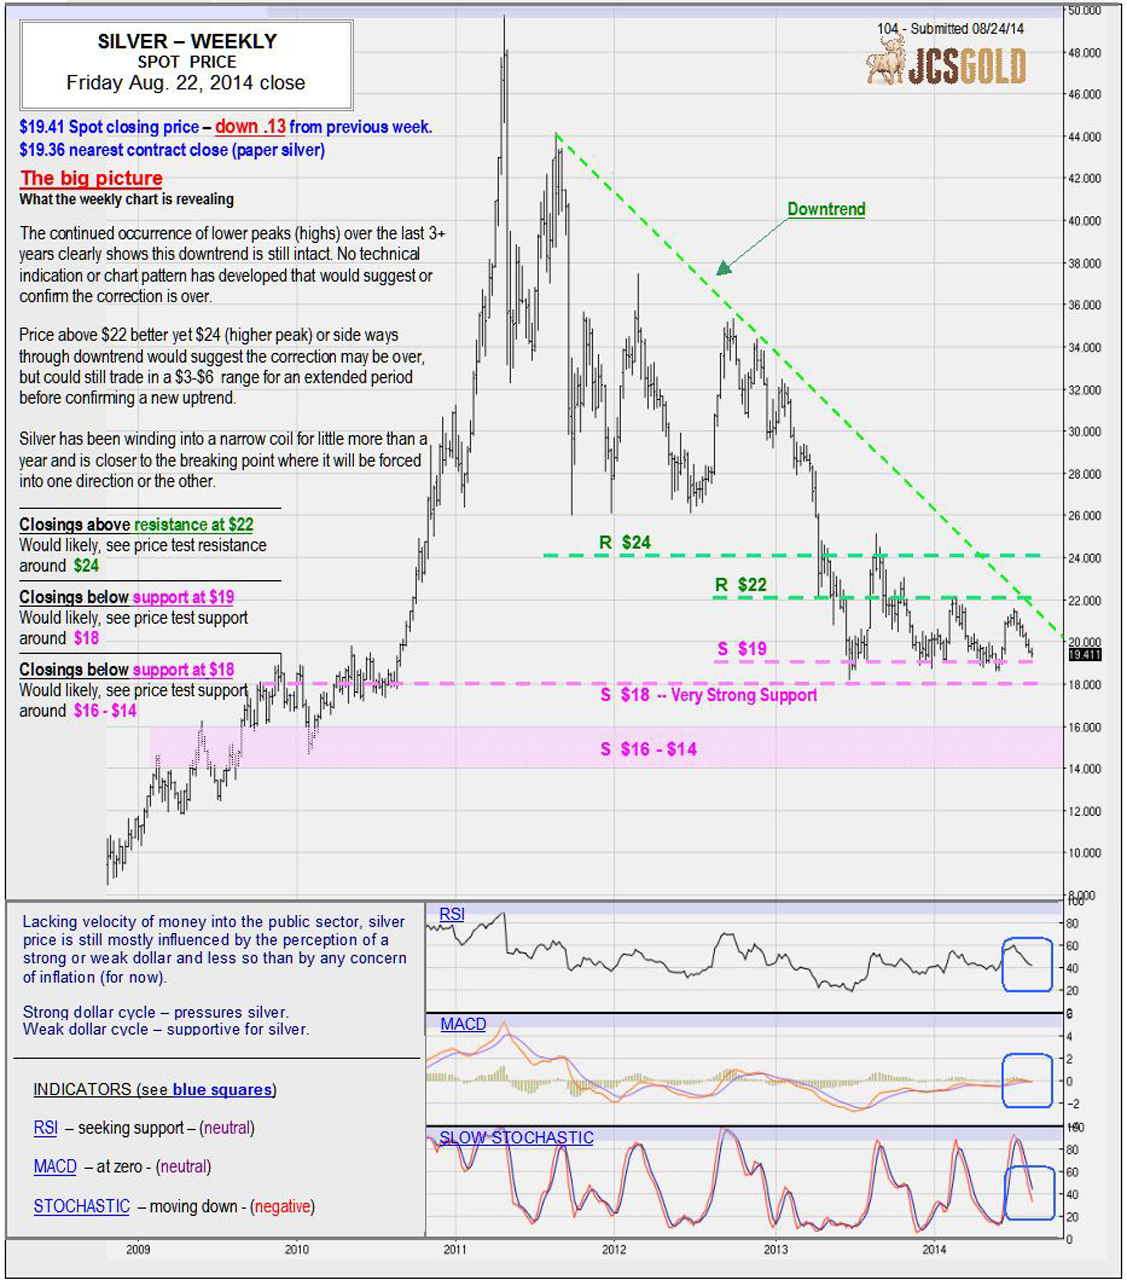 Aug 22, 2014 chart & commentary